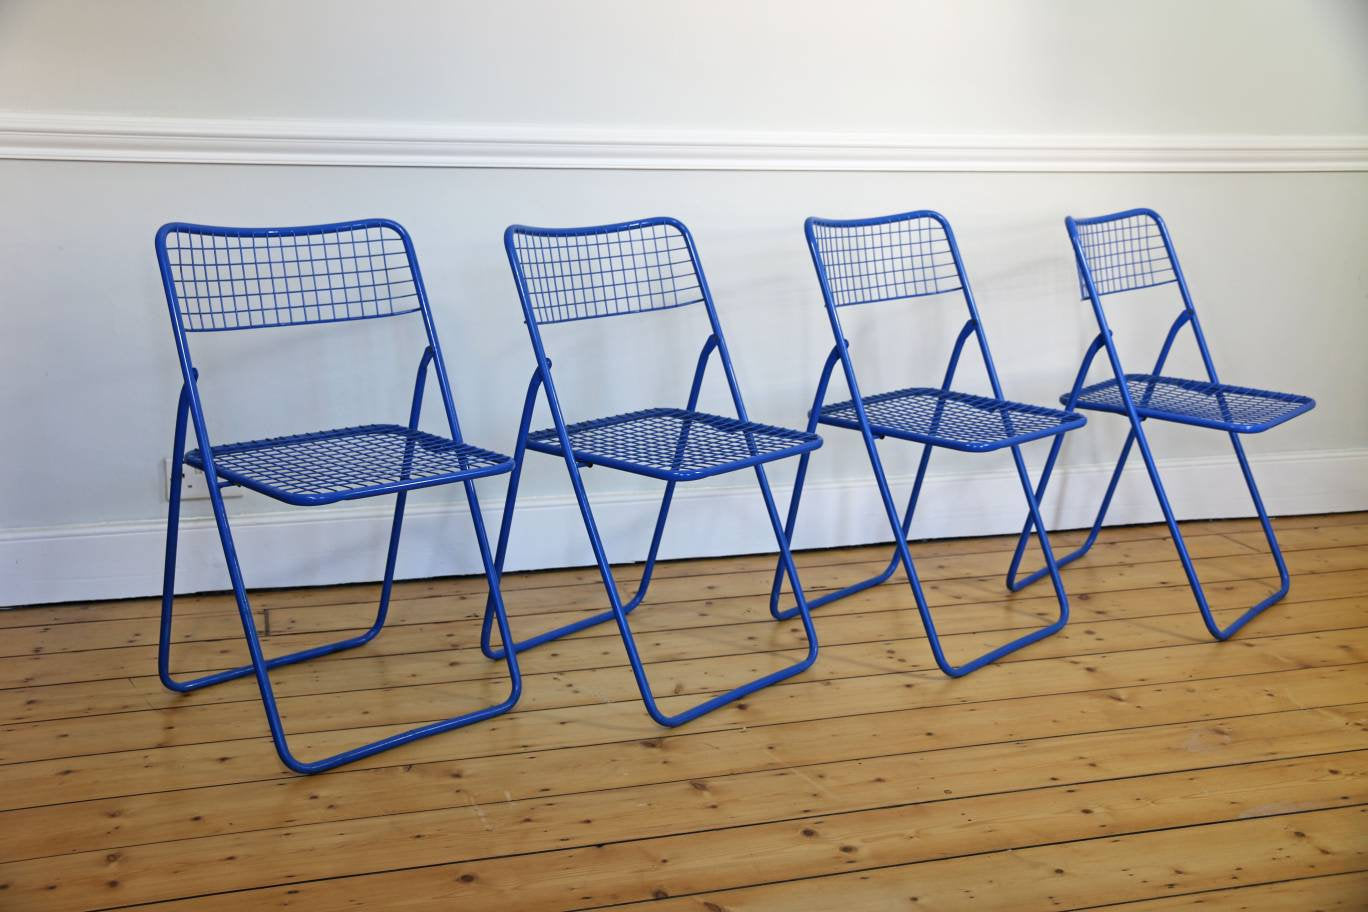 Sensational Set Of 4 Ted Net Chairs By Niels Gammelgaard For Ikea 1979 Squirreltailoven Fun Painted Chair Ideas Images Squirreltailovenorg